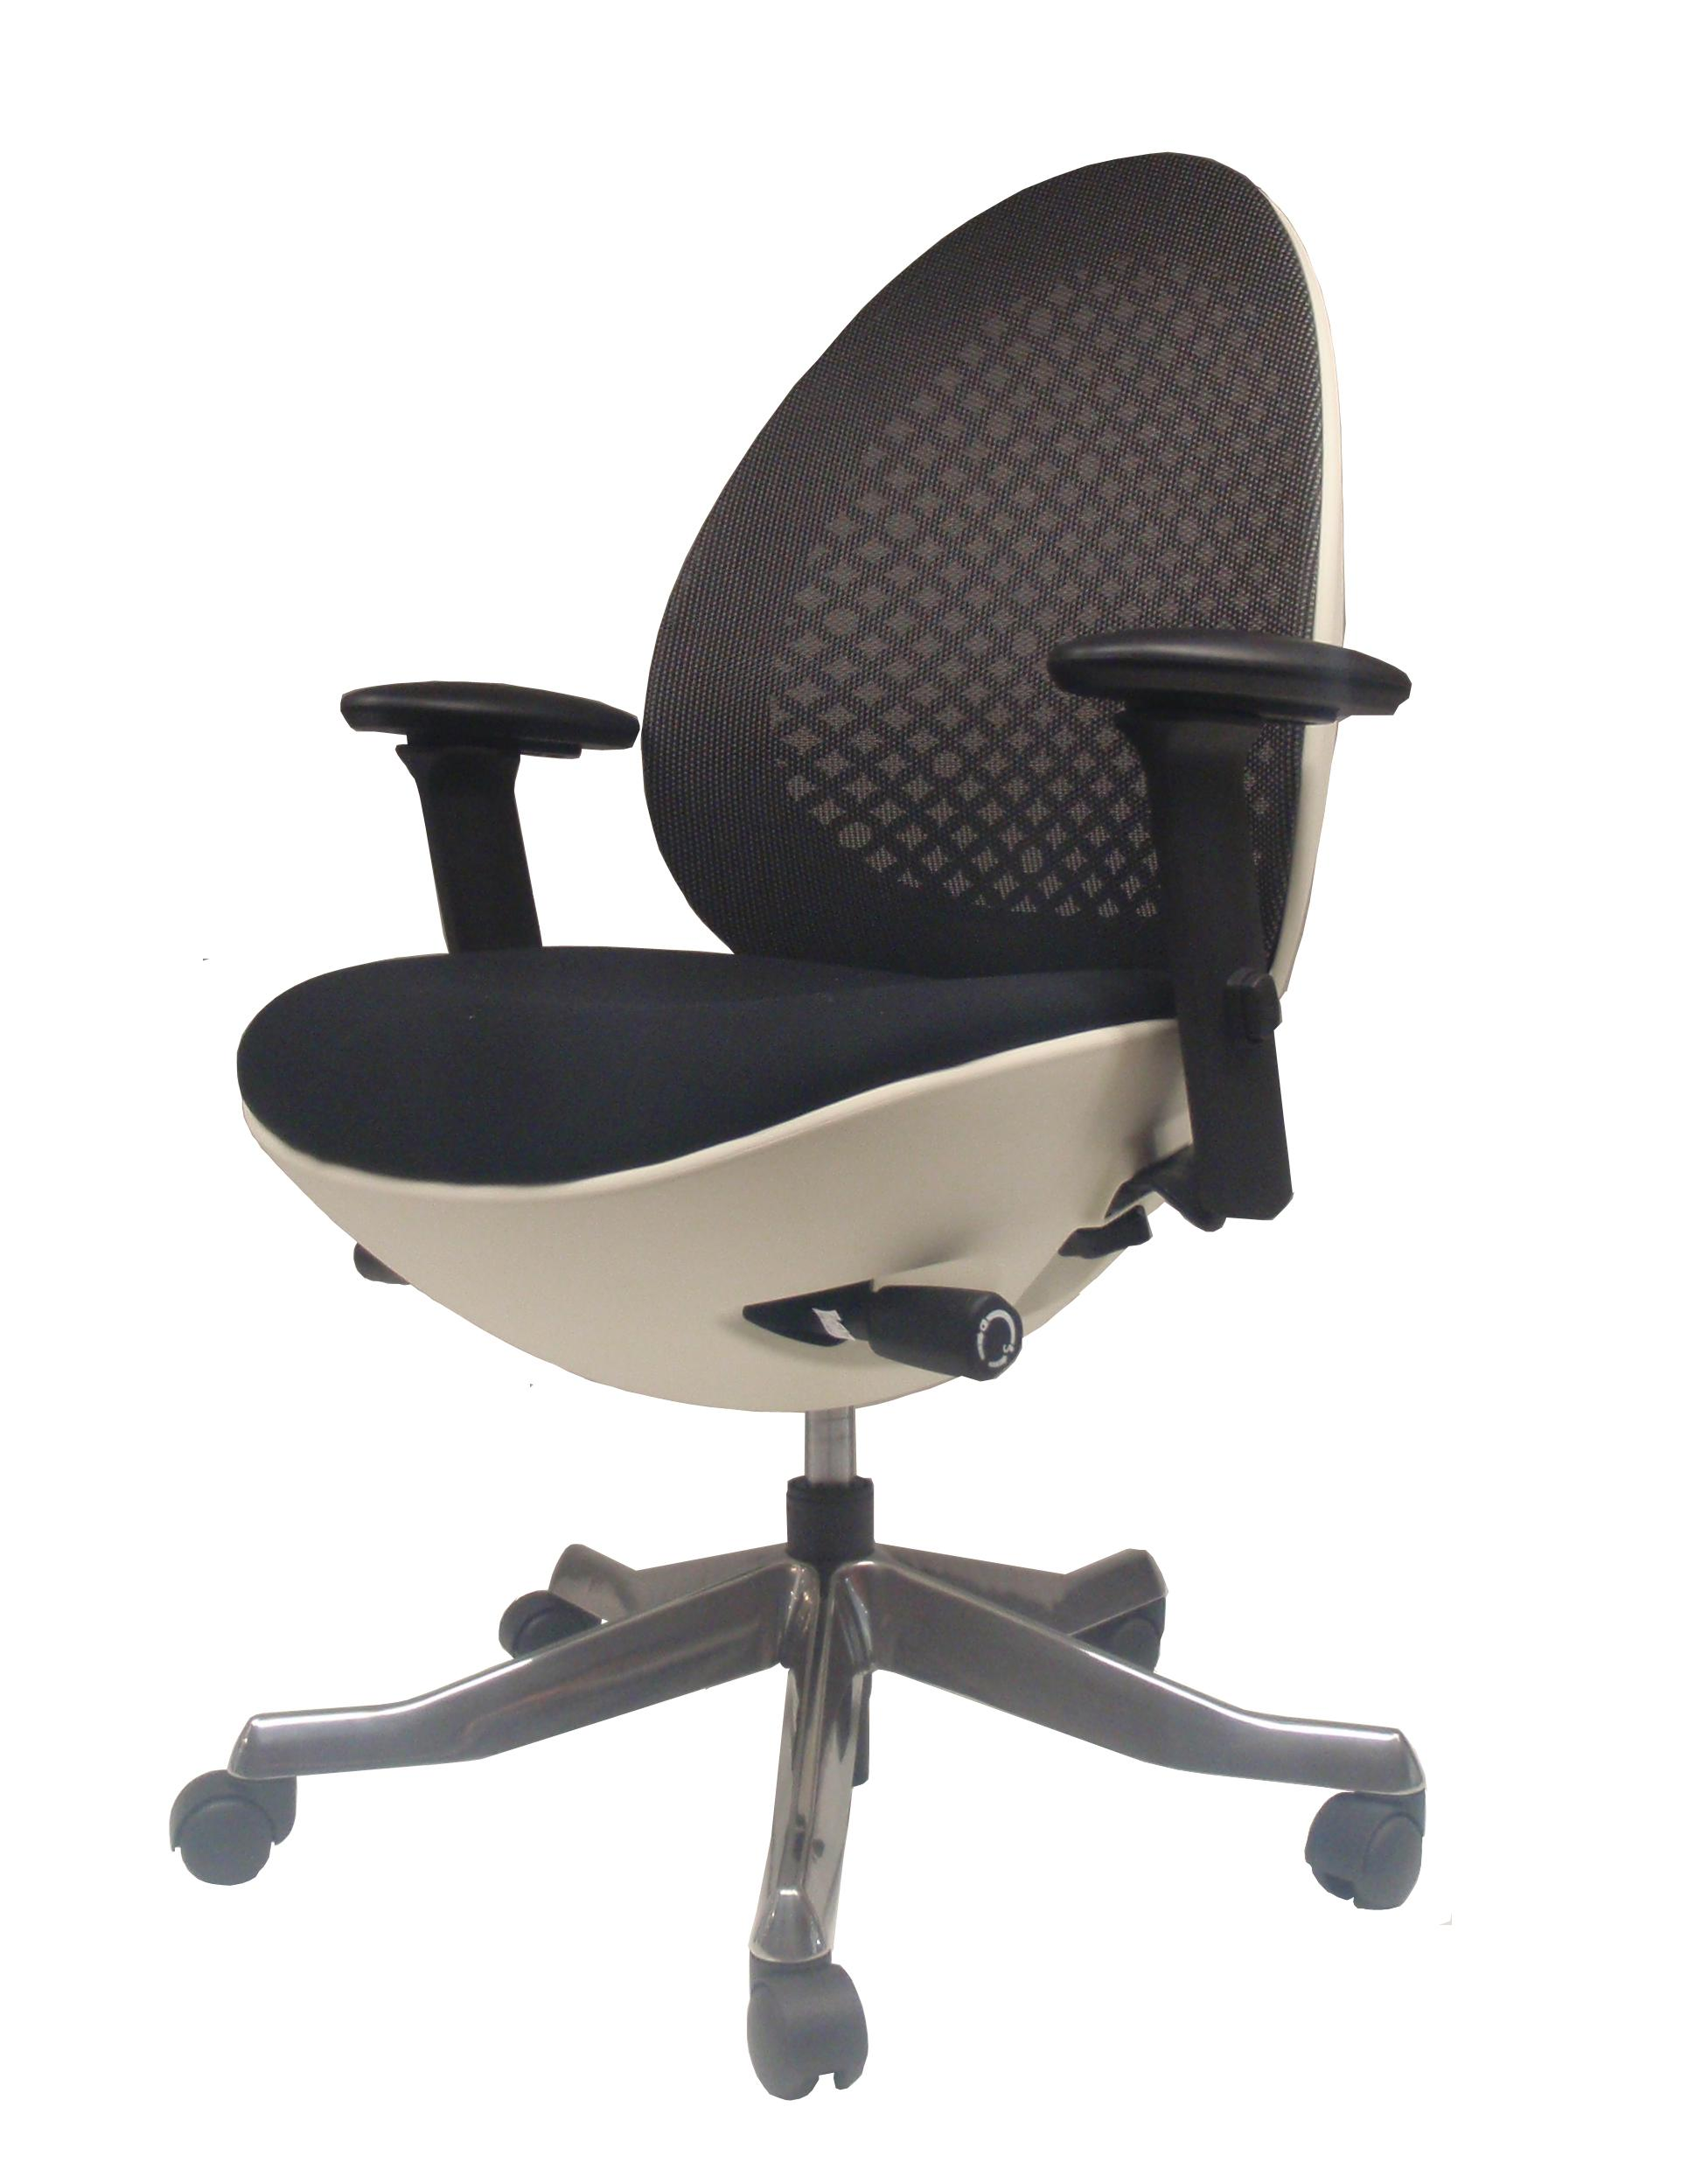 Ergonomic Office Chairs Ergonomic Recliner Office Chair Unique Design Office